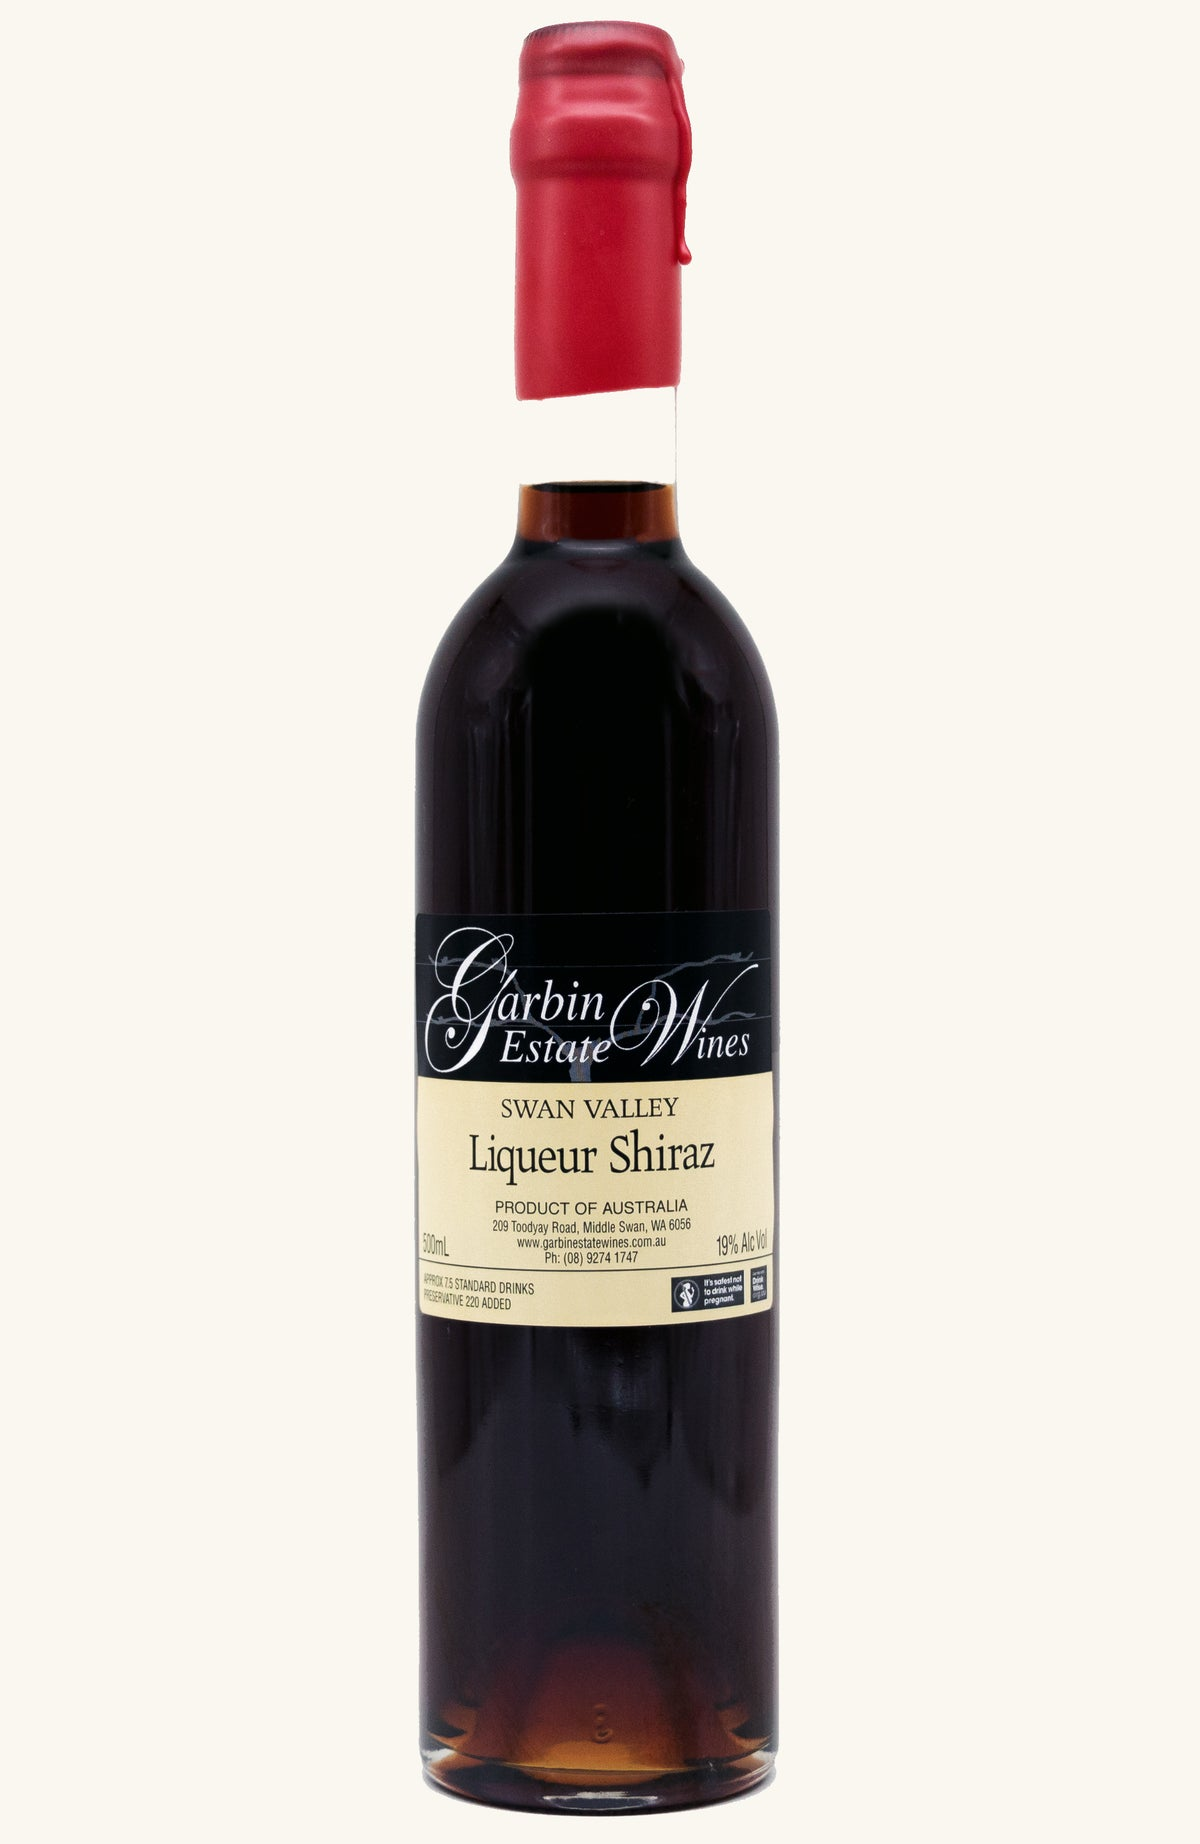 Garbin Estate Wines Liqueur Shiraz